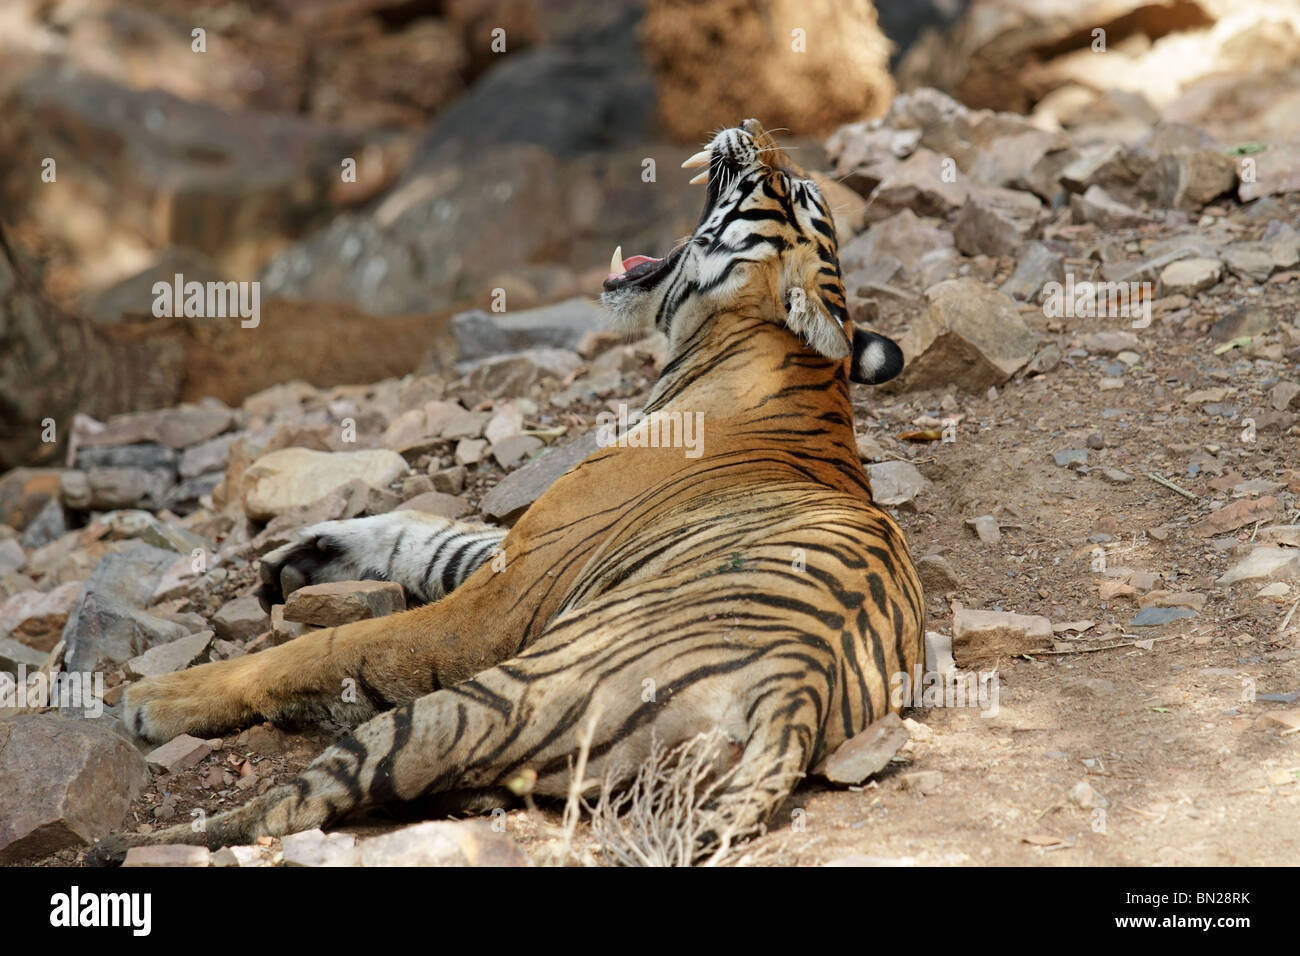 Tiger yawns wide and shows its canines in Ranthambhore National Park, India - Stock Image